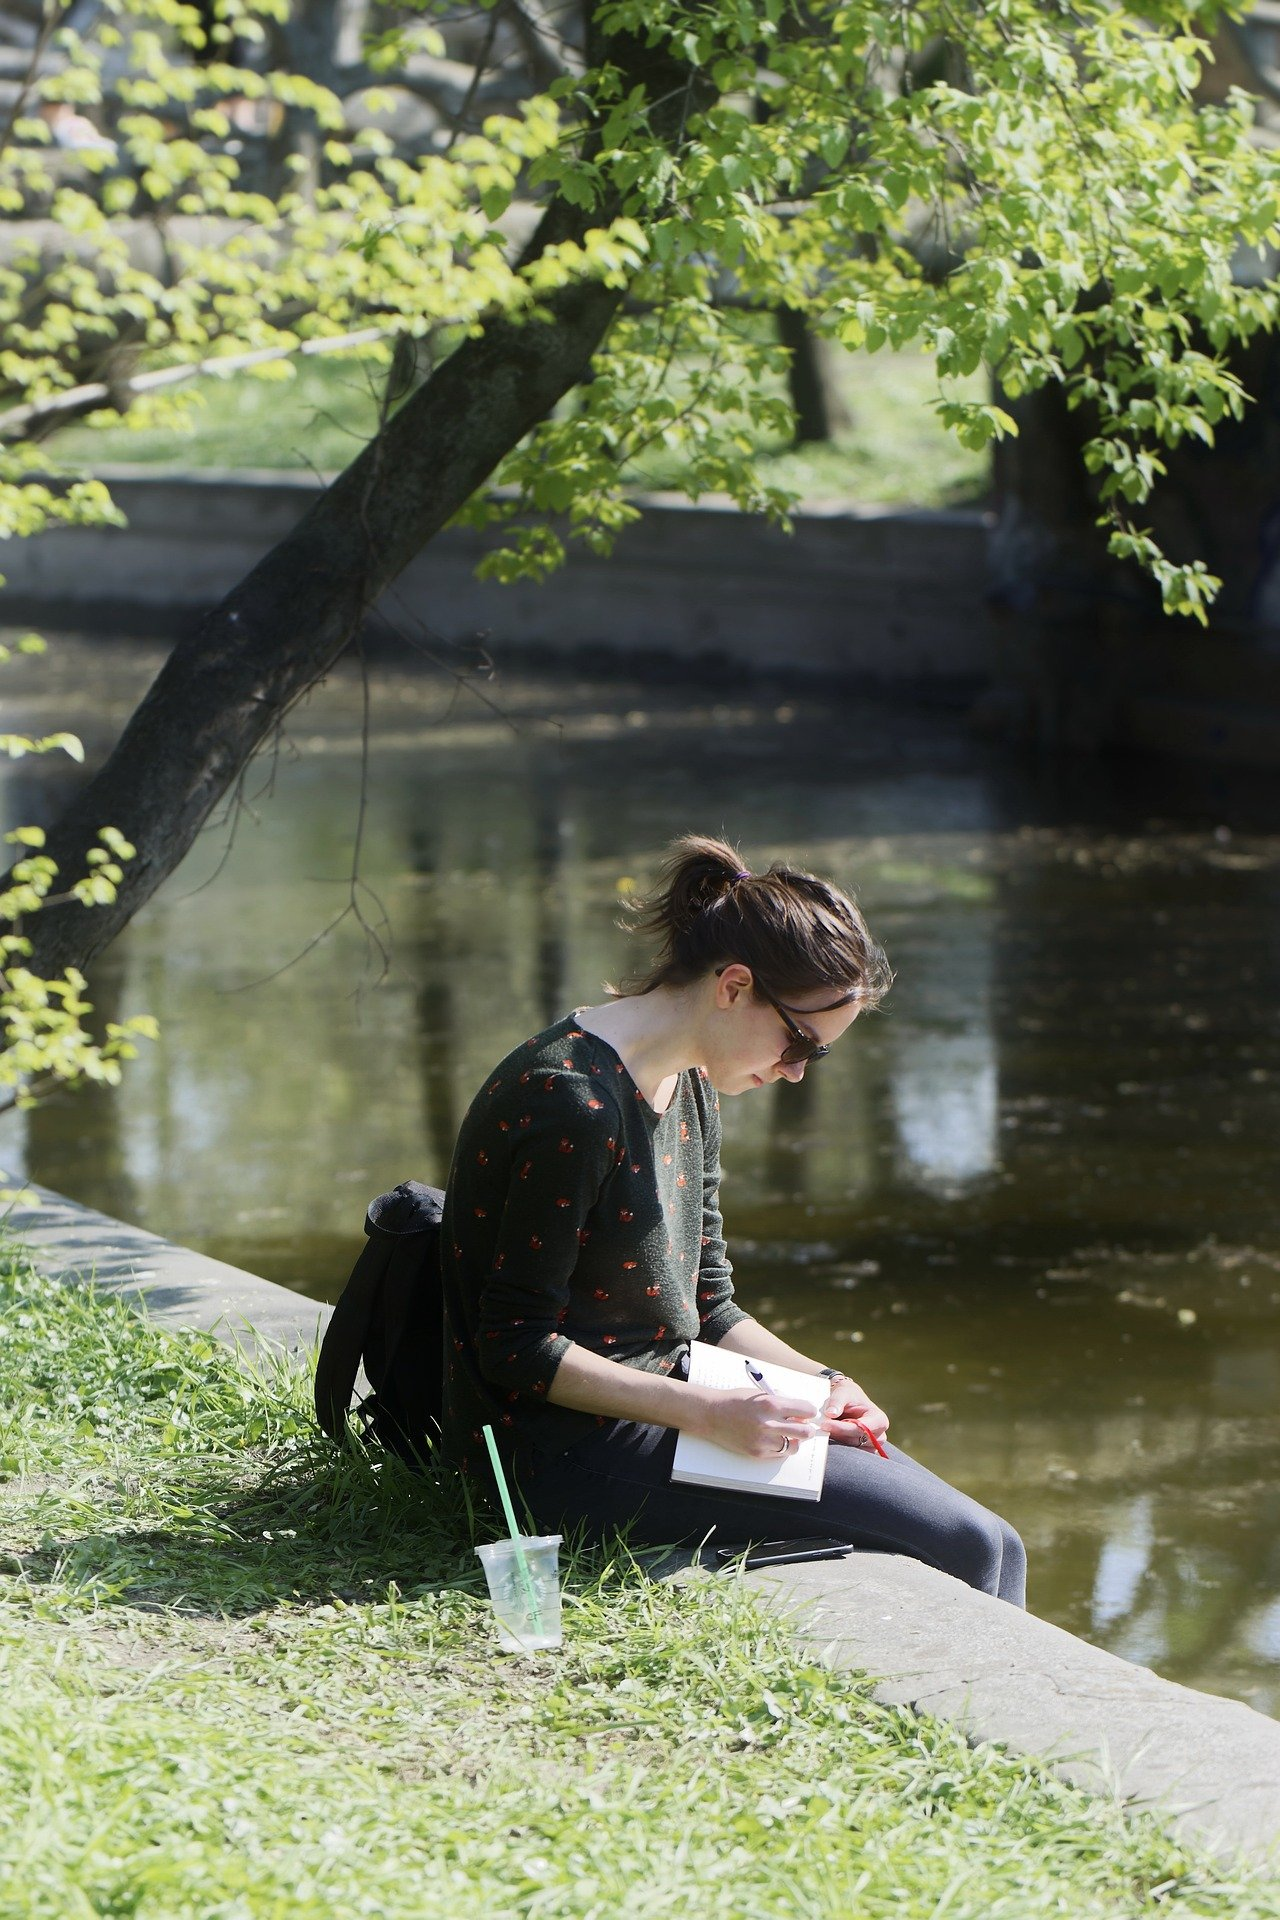 Distance Learning can be done from anywhere, like in this photo of a girl next to a canal.